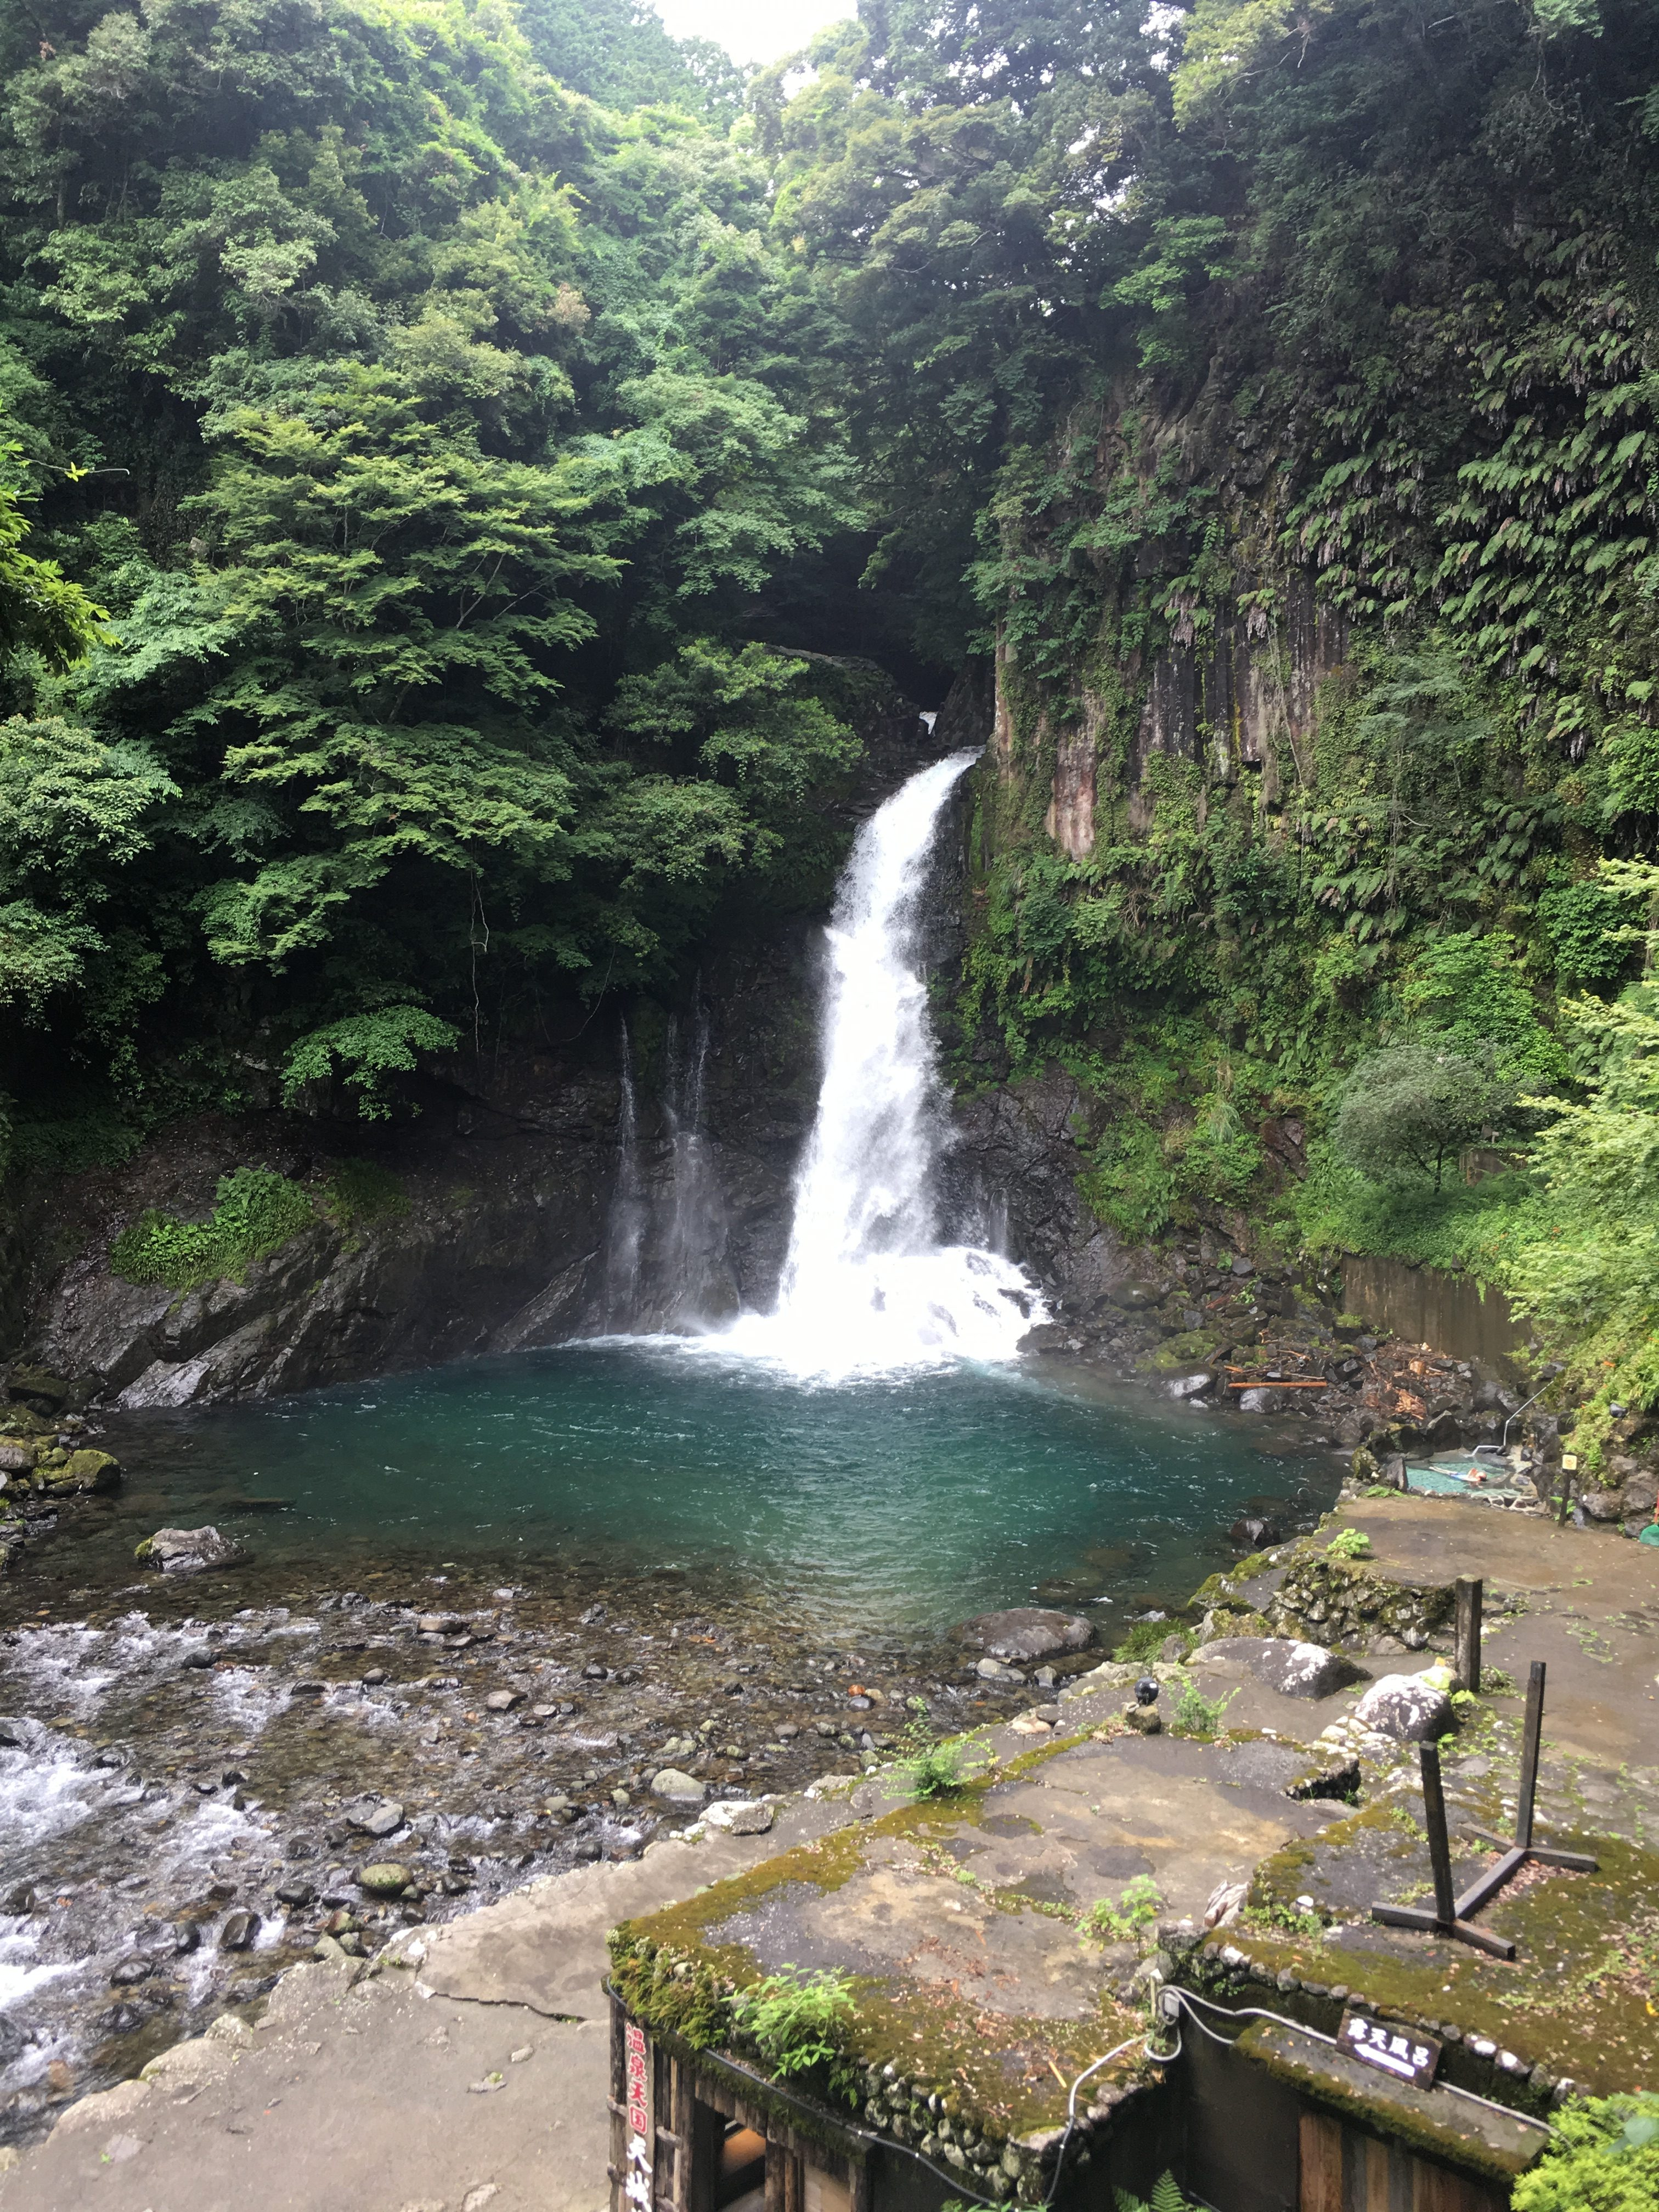 3 day weekend in Shimoda and Hakone